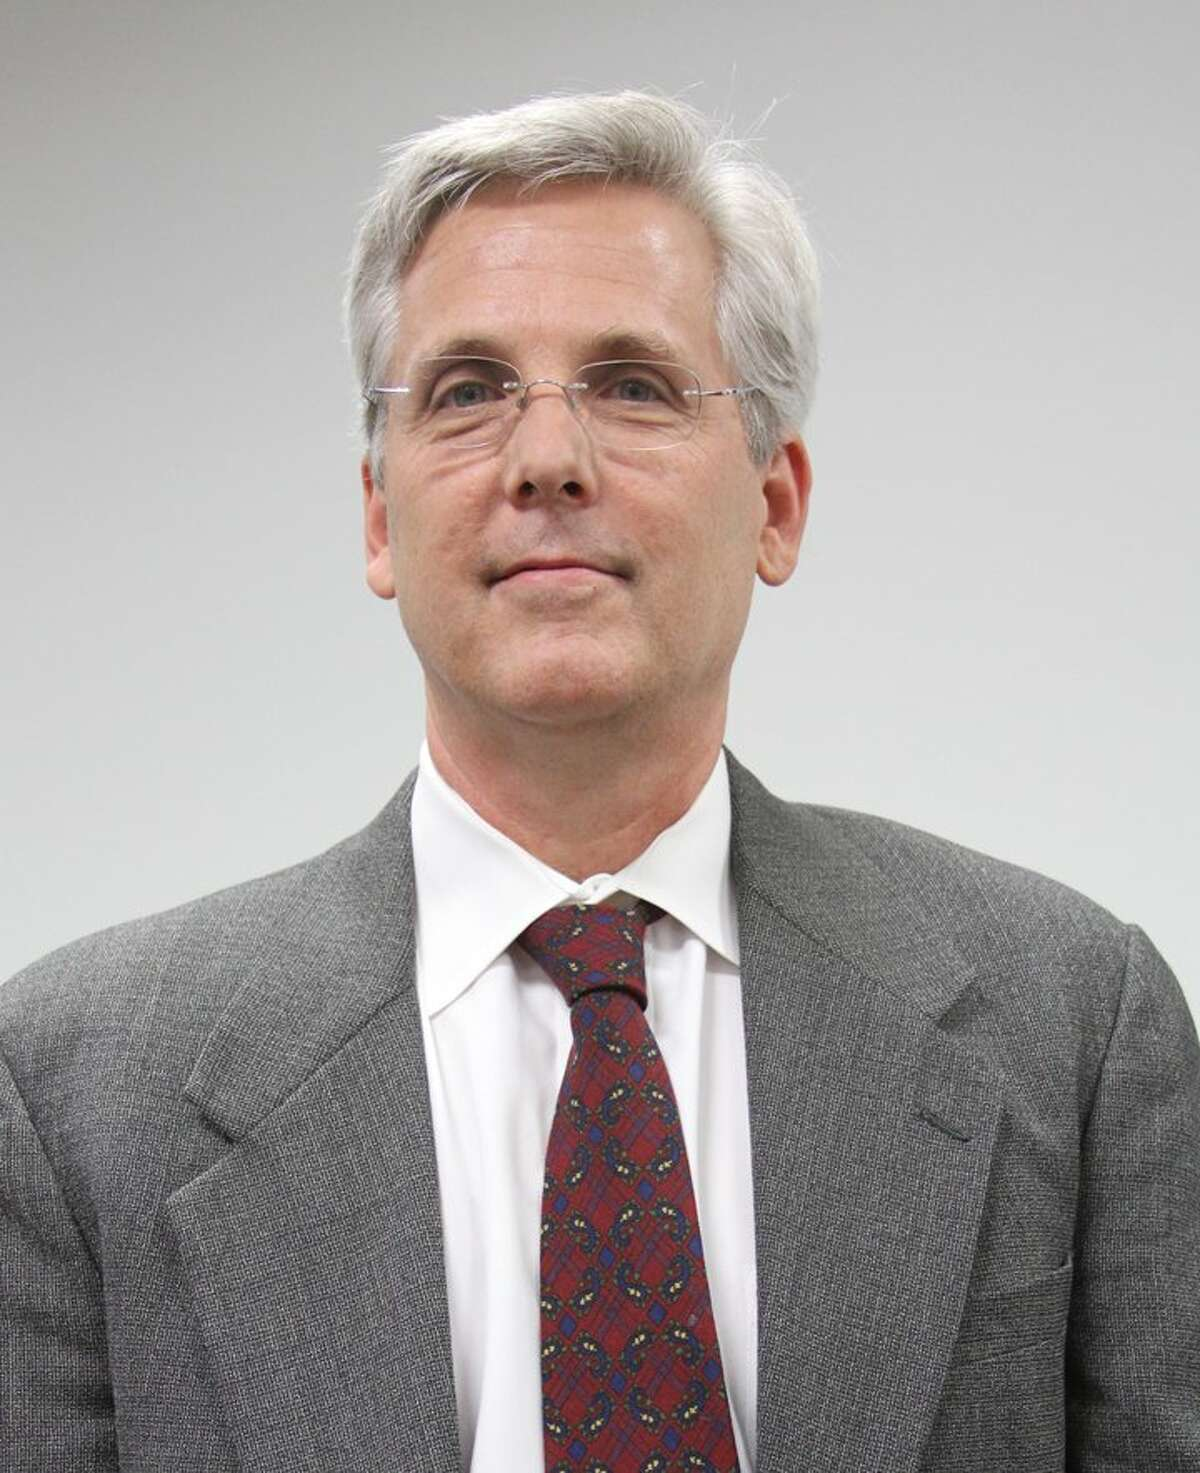 John Kelly, superintendent of the Pearland Independent School District